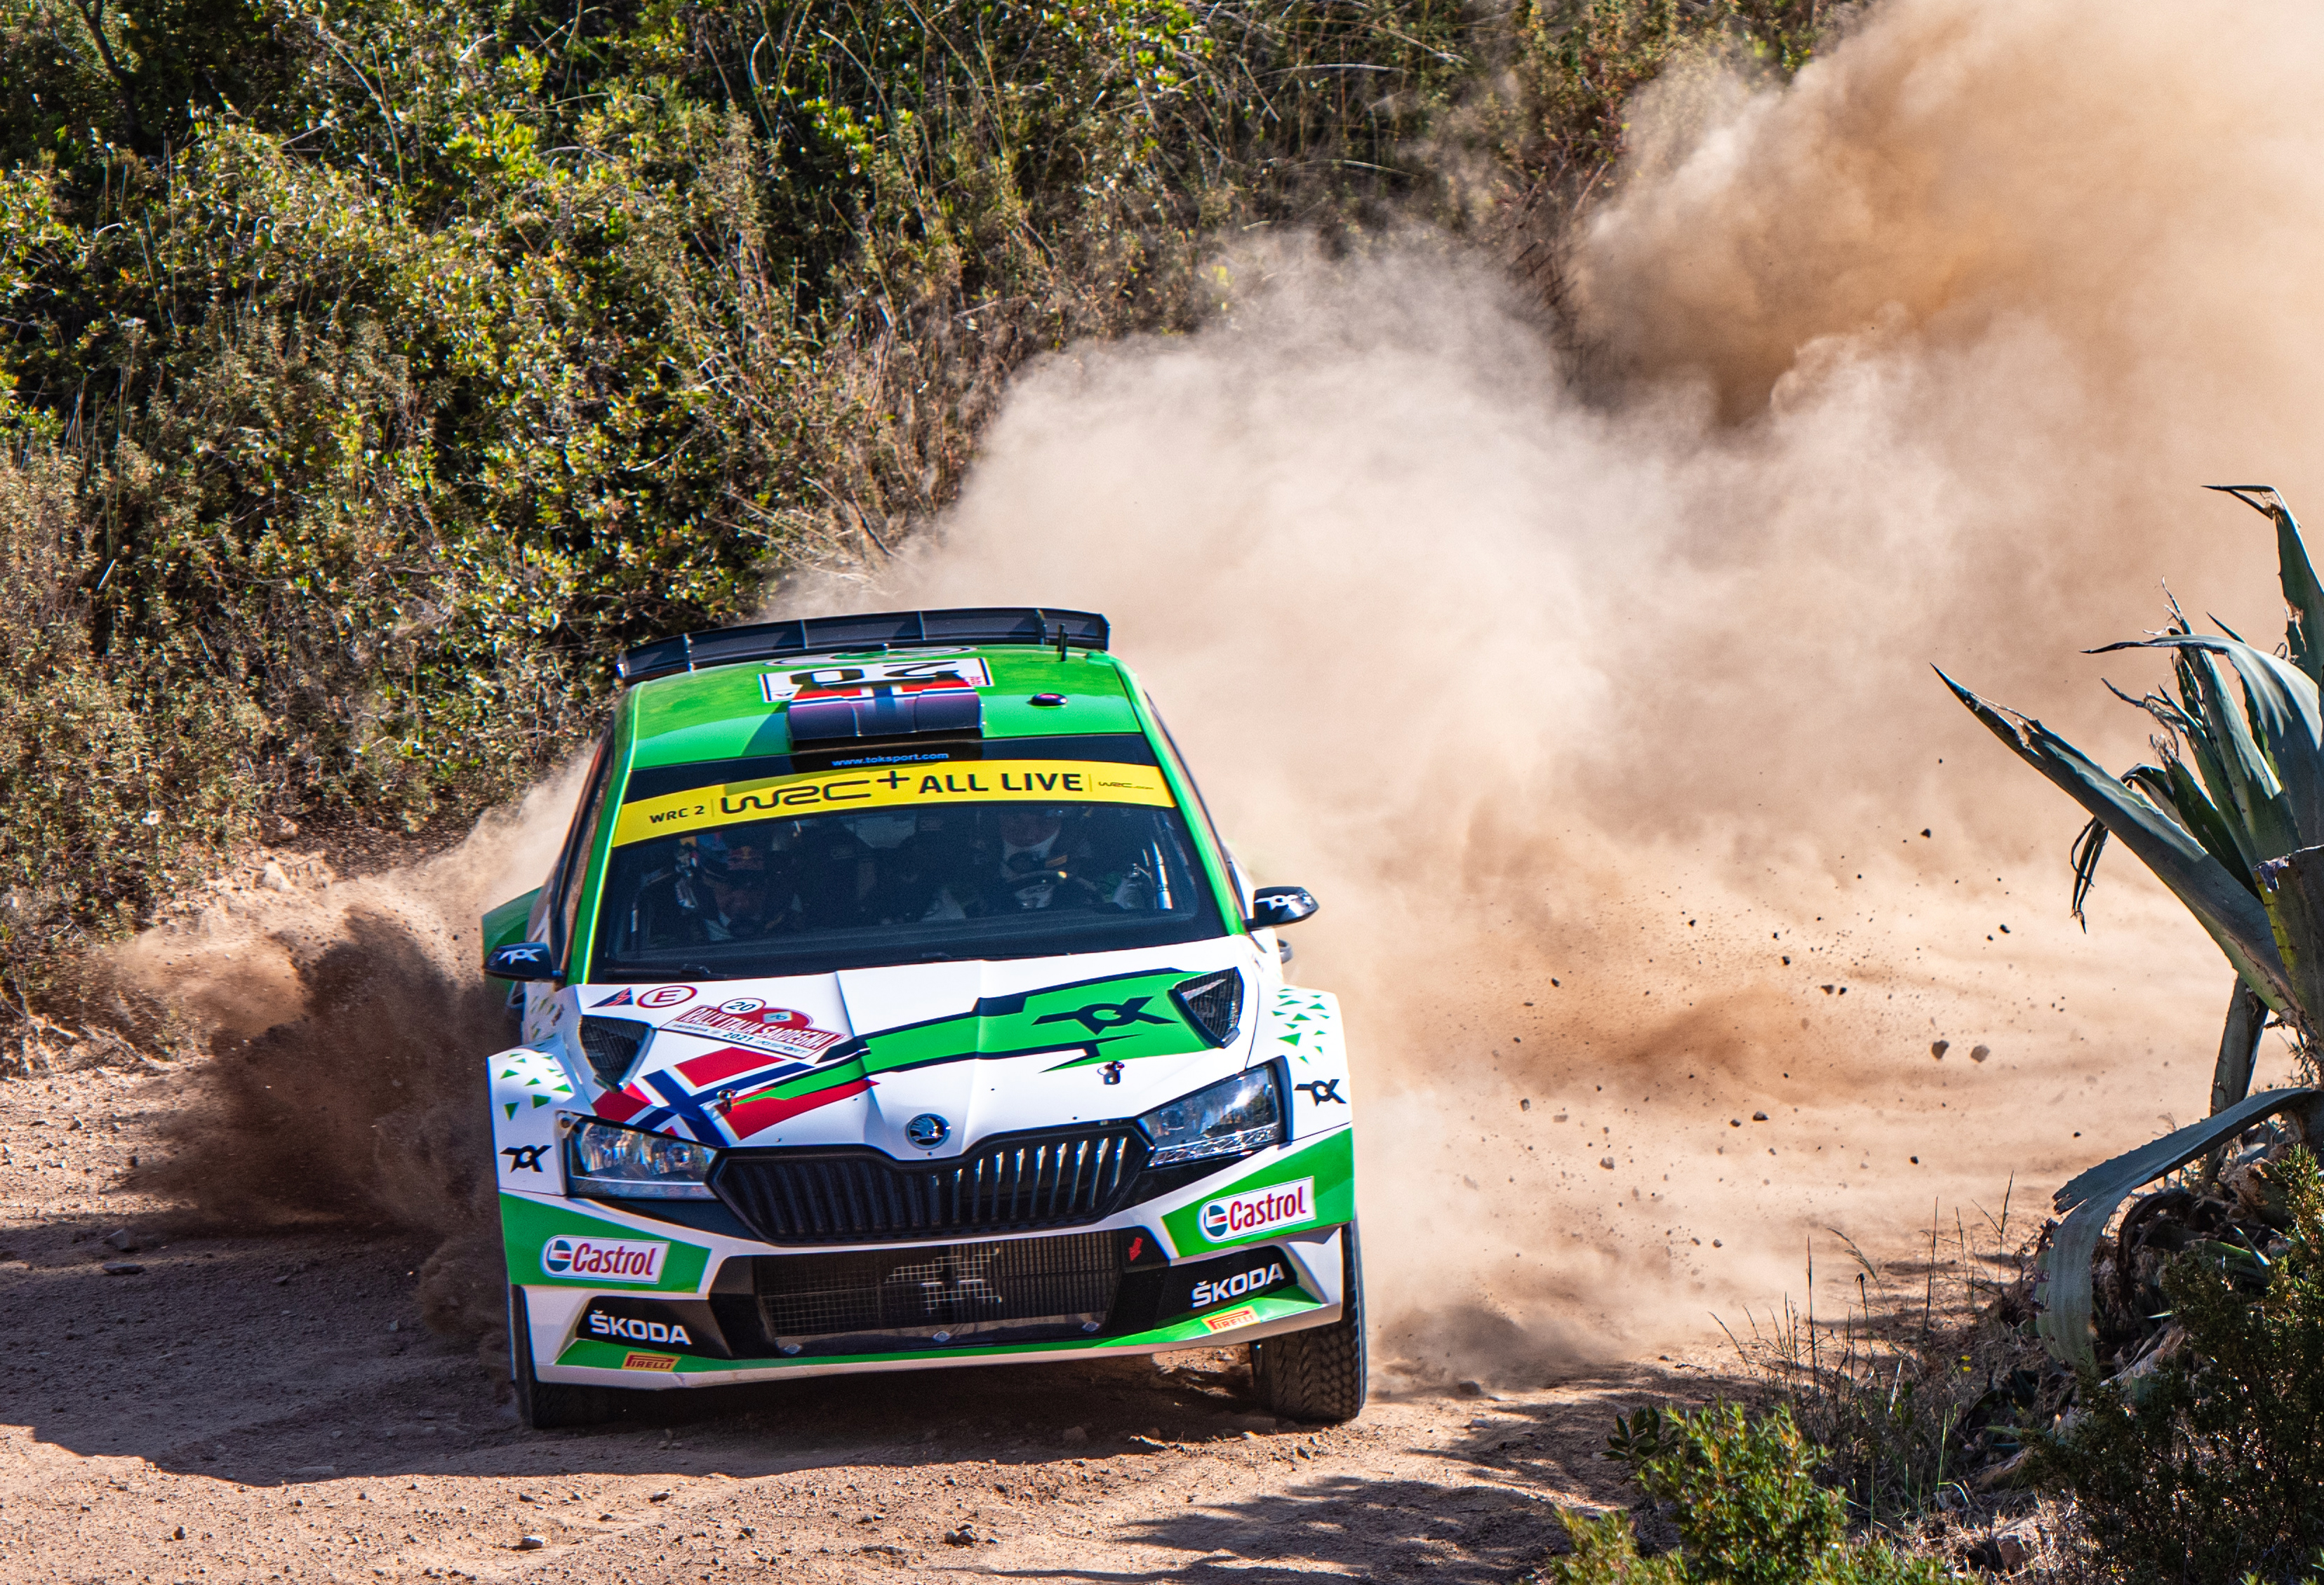 Rally Estonia: SKODA driver Andreas Mikkelsen wants to strengthen lead in WRC2 category - Image 3